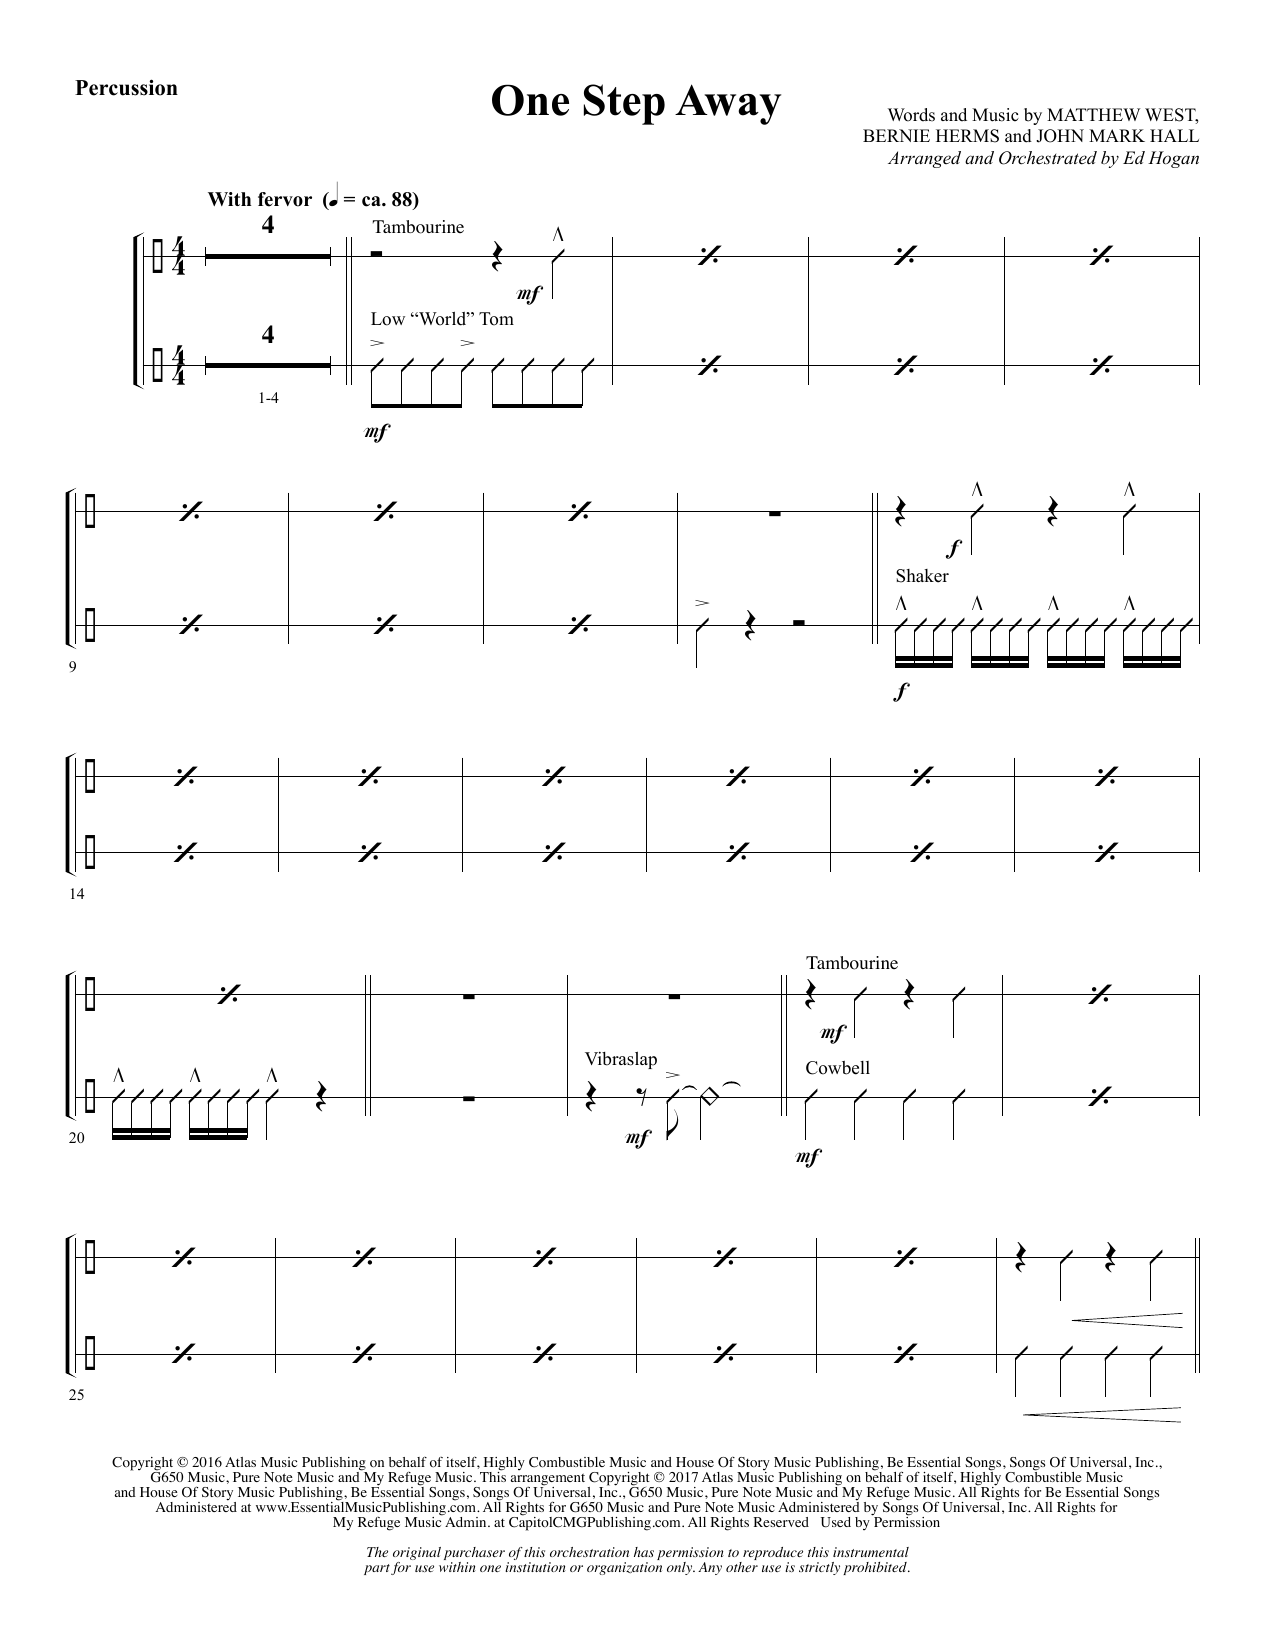 Ed Hogan One Step Away - Percussion sheet music notes and chords. Download Printable PDF.